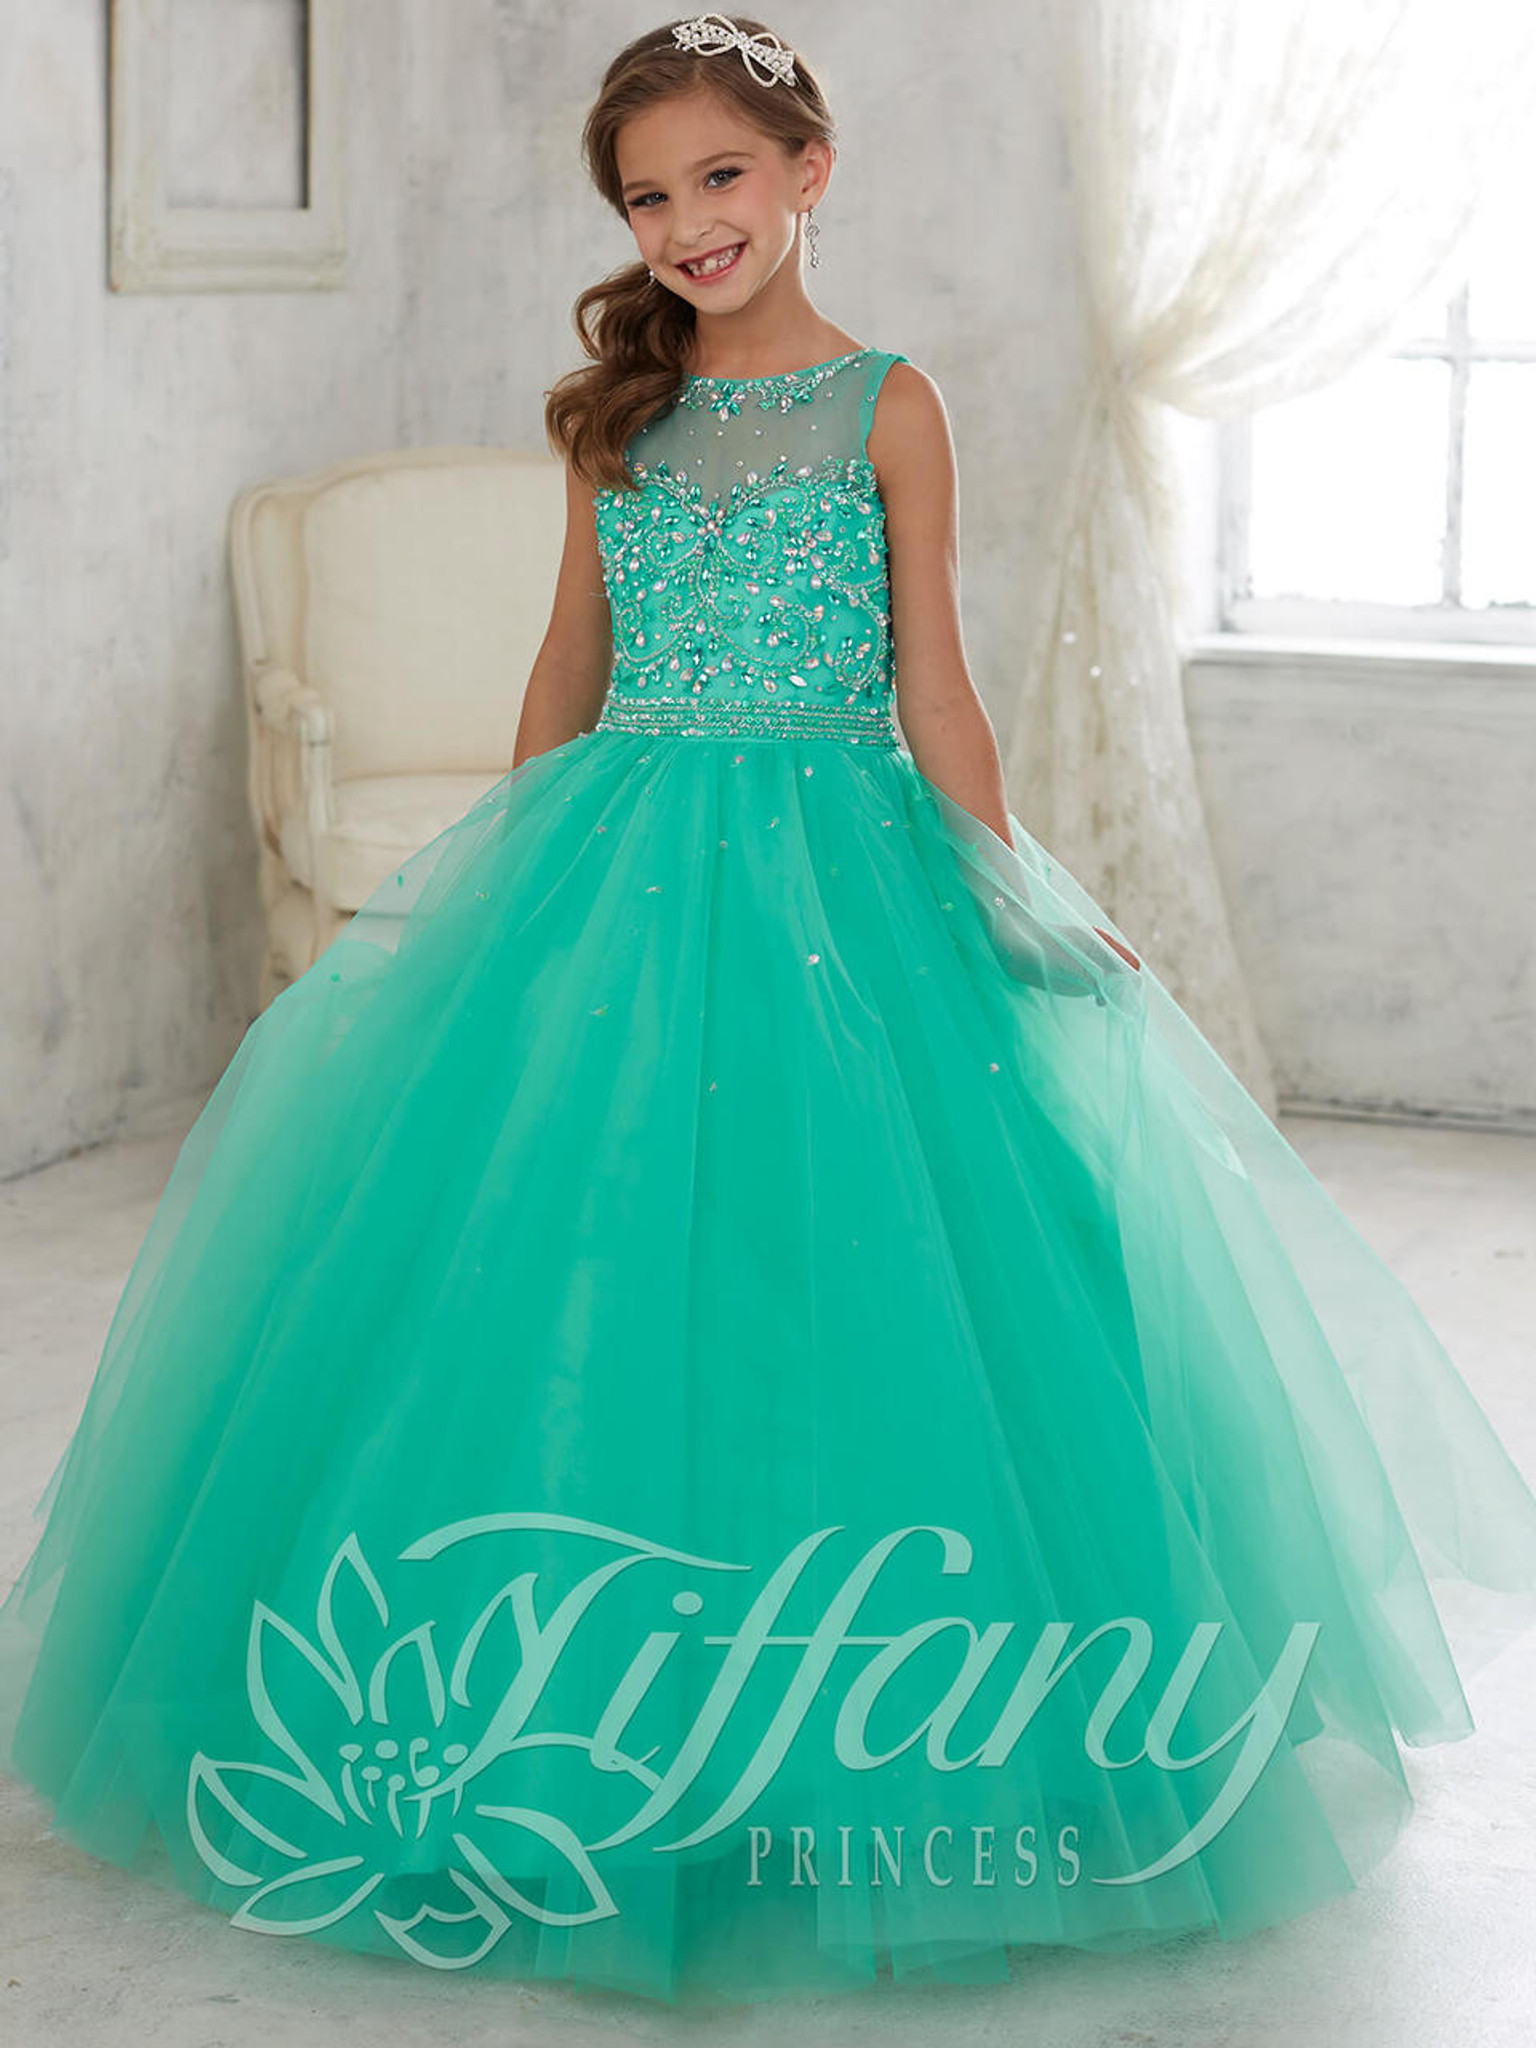 Tulle Pageant Dress by Tiffany Princess 13442